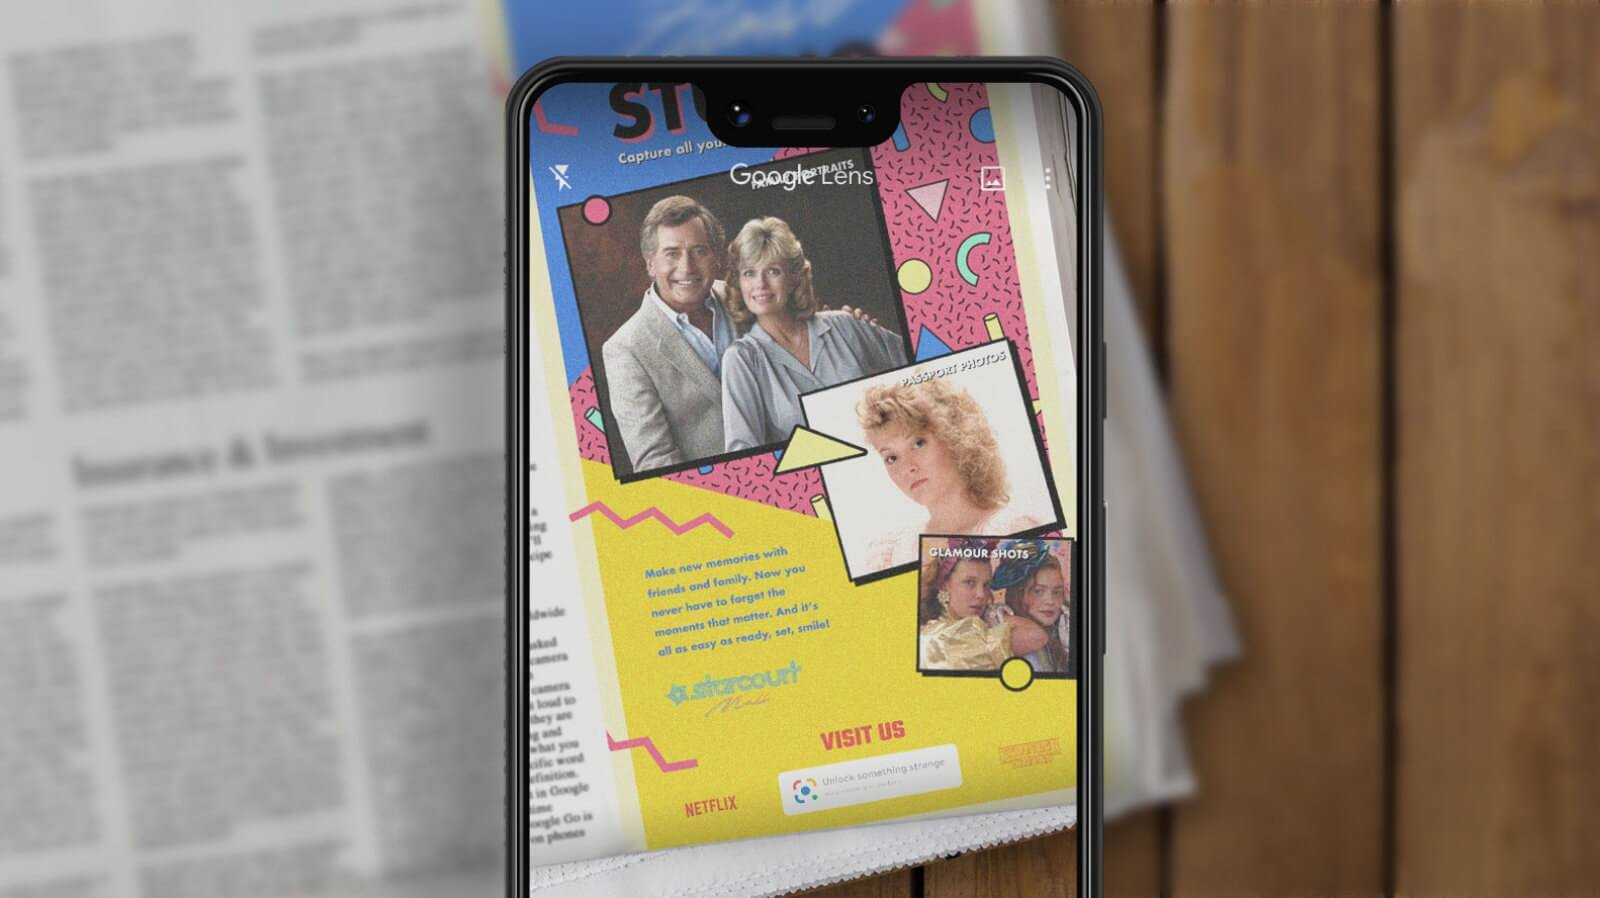 Google Lens AR shows Stranger Things 3 newspaper ads in all their 80s glory